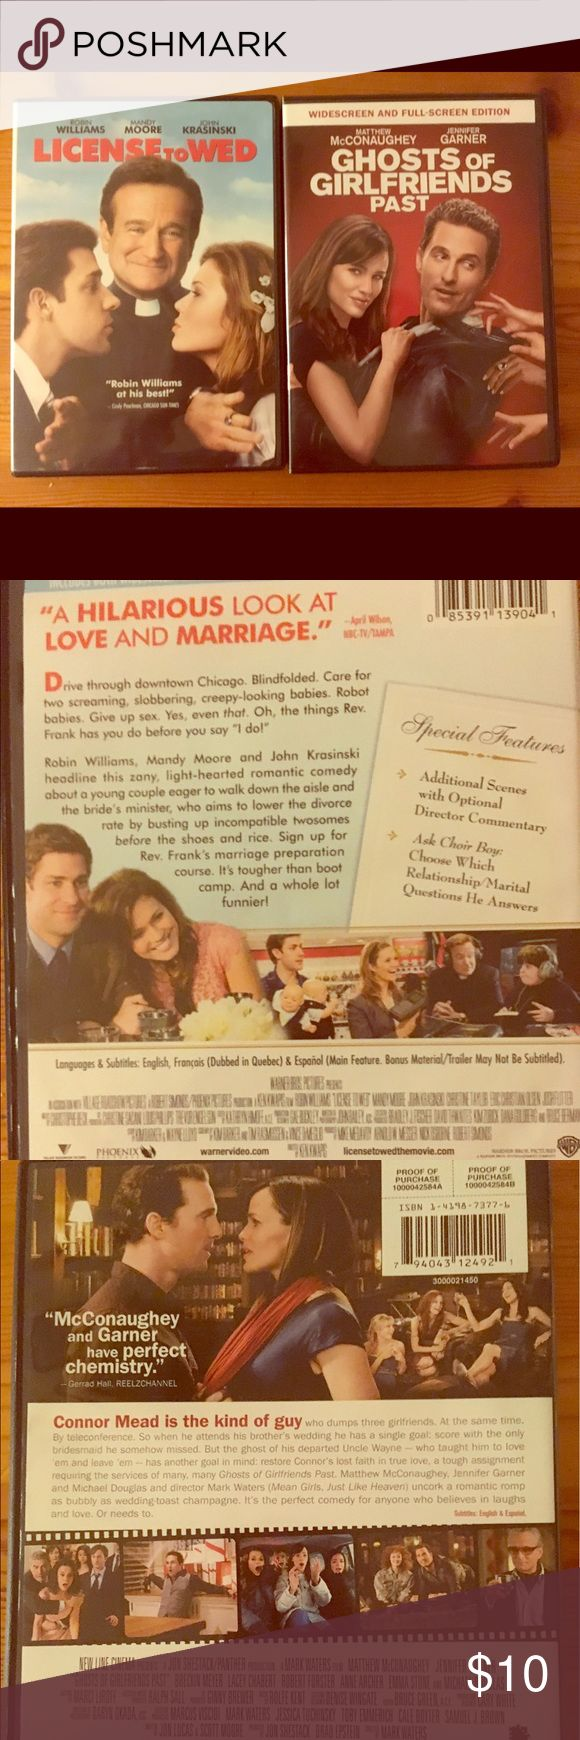 License to Wed & Ghosts of Girlfriends Past! Excellent condition. Fabulous rom-com wedding movie bundle with amazing casts (Mandy Moore, Jennifer Garner, etc.)! 🎥 👰 Other